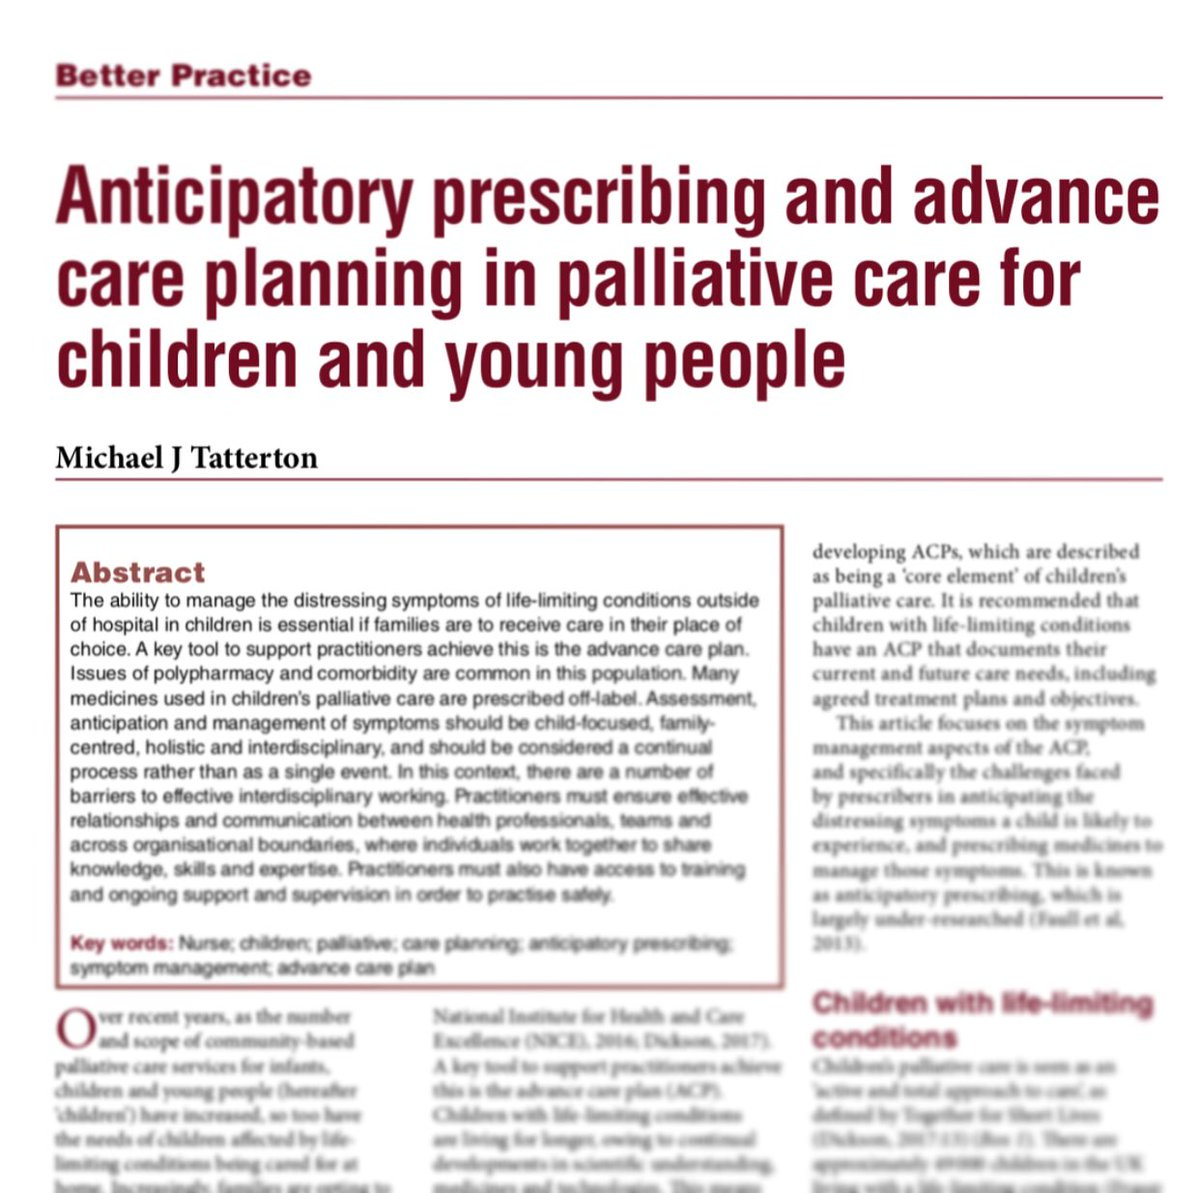 Pleased to have been #published in @NursPrescribing, with a paper on #improving practice in anticipatory #prescribing in #children's #PalliativeCare. @MartinHouseCH @YoHCPCN  #nursing #medicines #CYPACP #ACP #NMP #familynursing #forthe49000<br>http://pic.twitter.com/BjYIlmCZsN